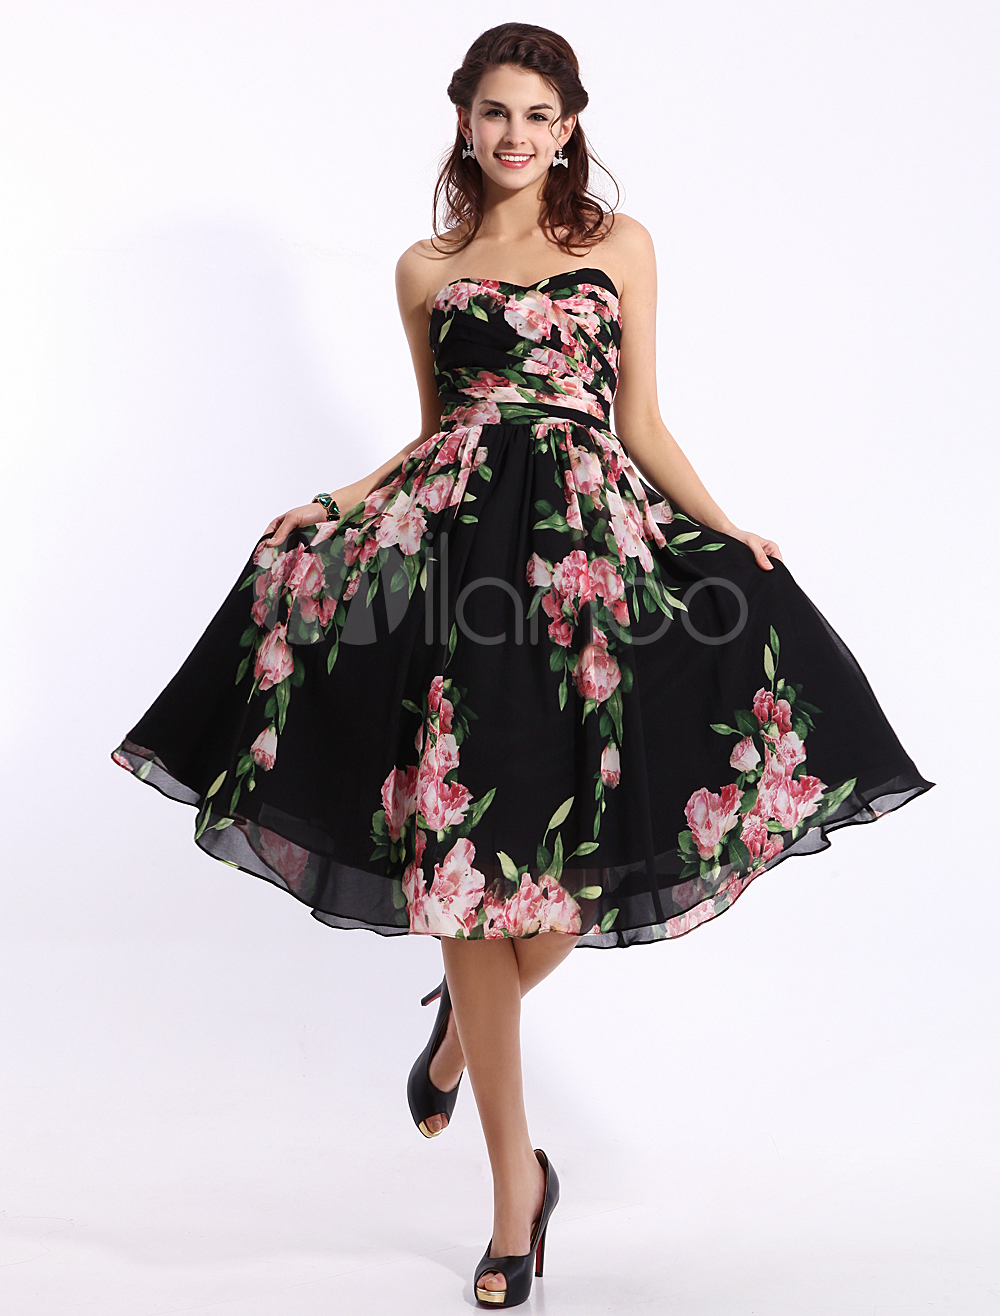 7f9dd16a656e Black Floral Print Dress In Knee Length Inspired by Ariana Grande at the  Grammys 2014 - Milanoo.com